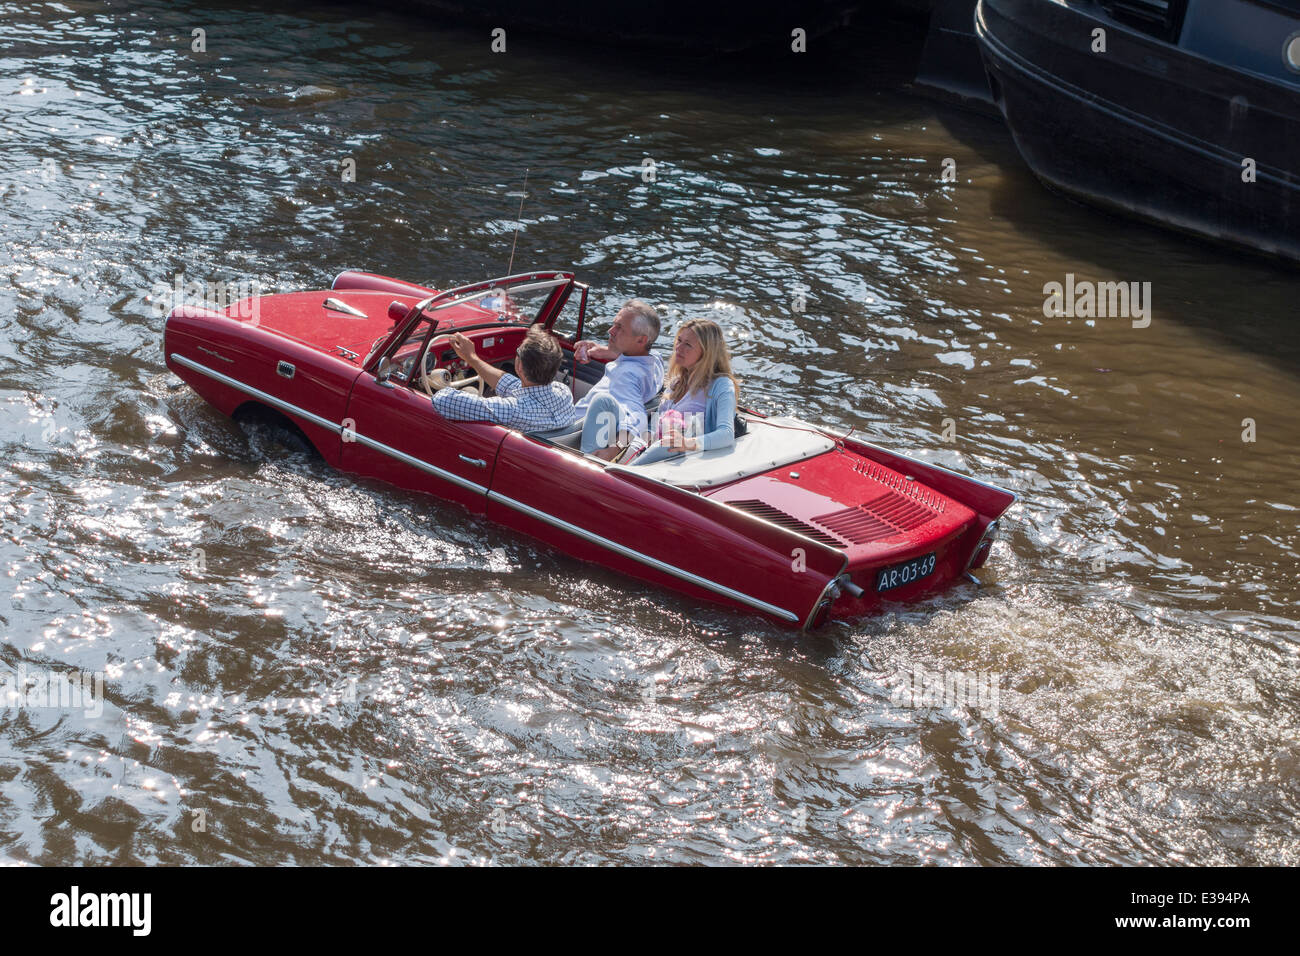 vintage-amphicar-770-in-an-amsterdam-can